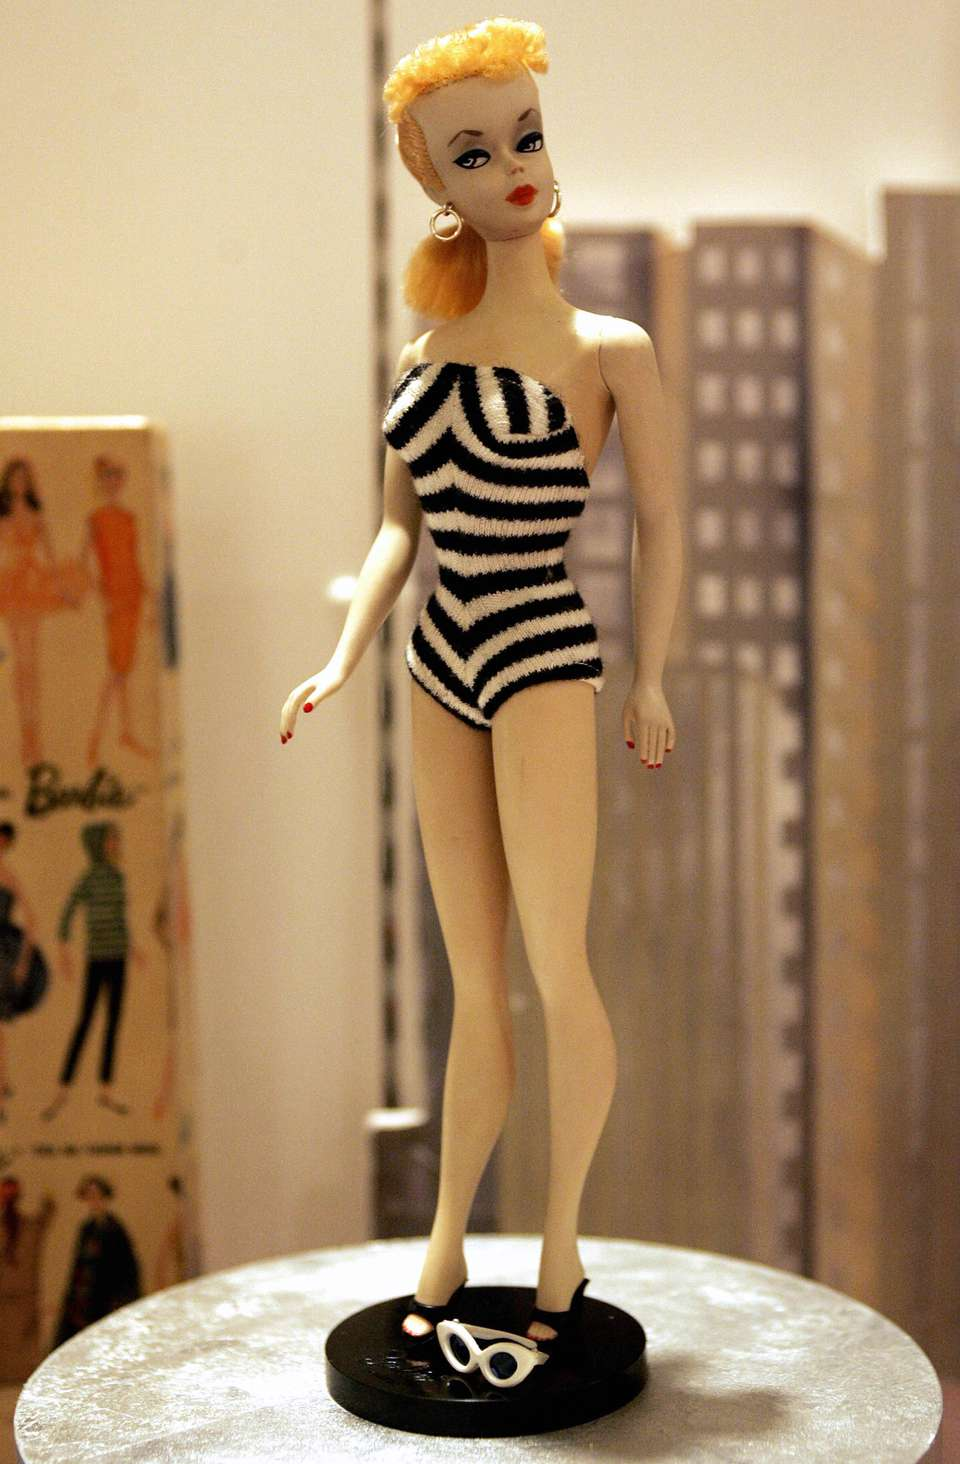 original No. 1 Barbie doll is displayed at the